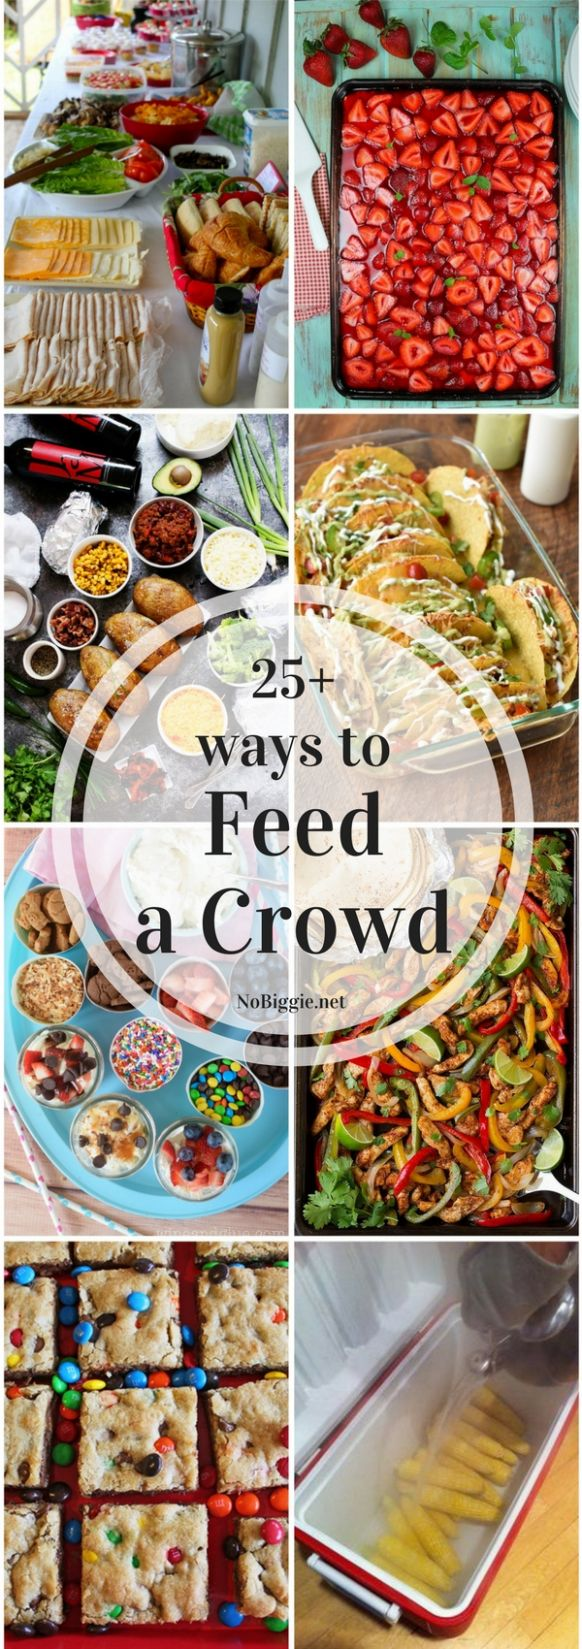 9+ Ways to Feed a Crowd | NoBiggie - Recipes Cooking For A Crowd